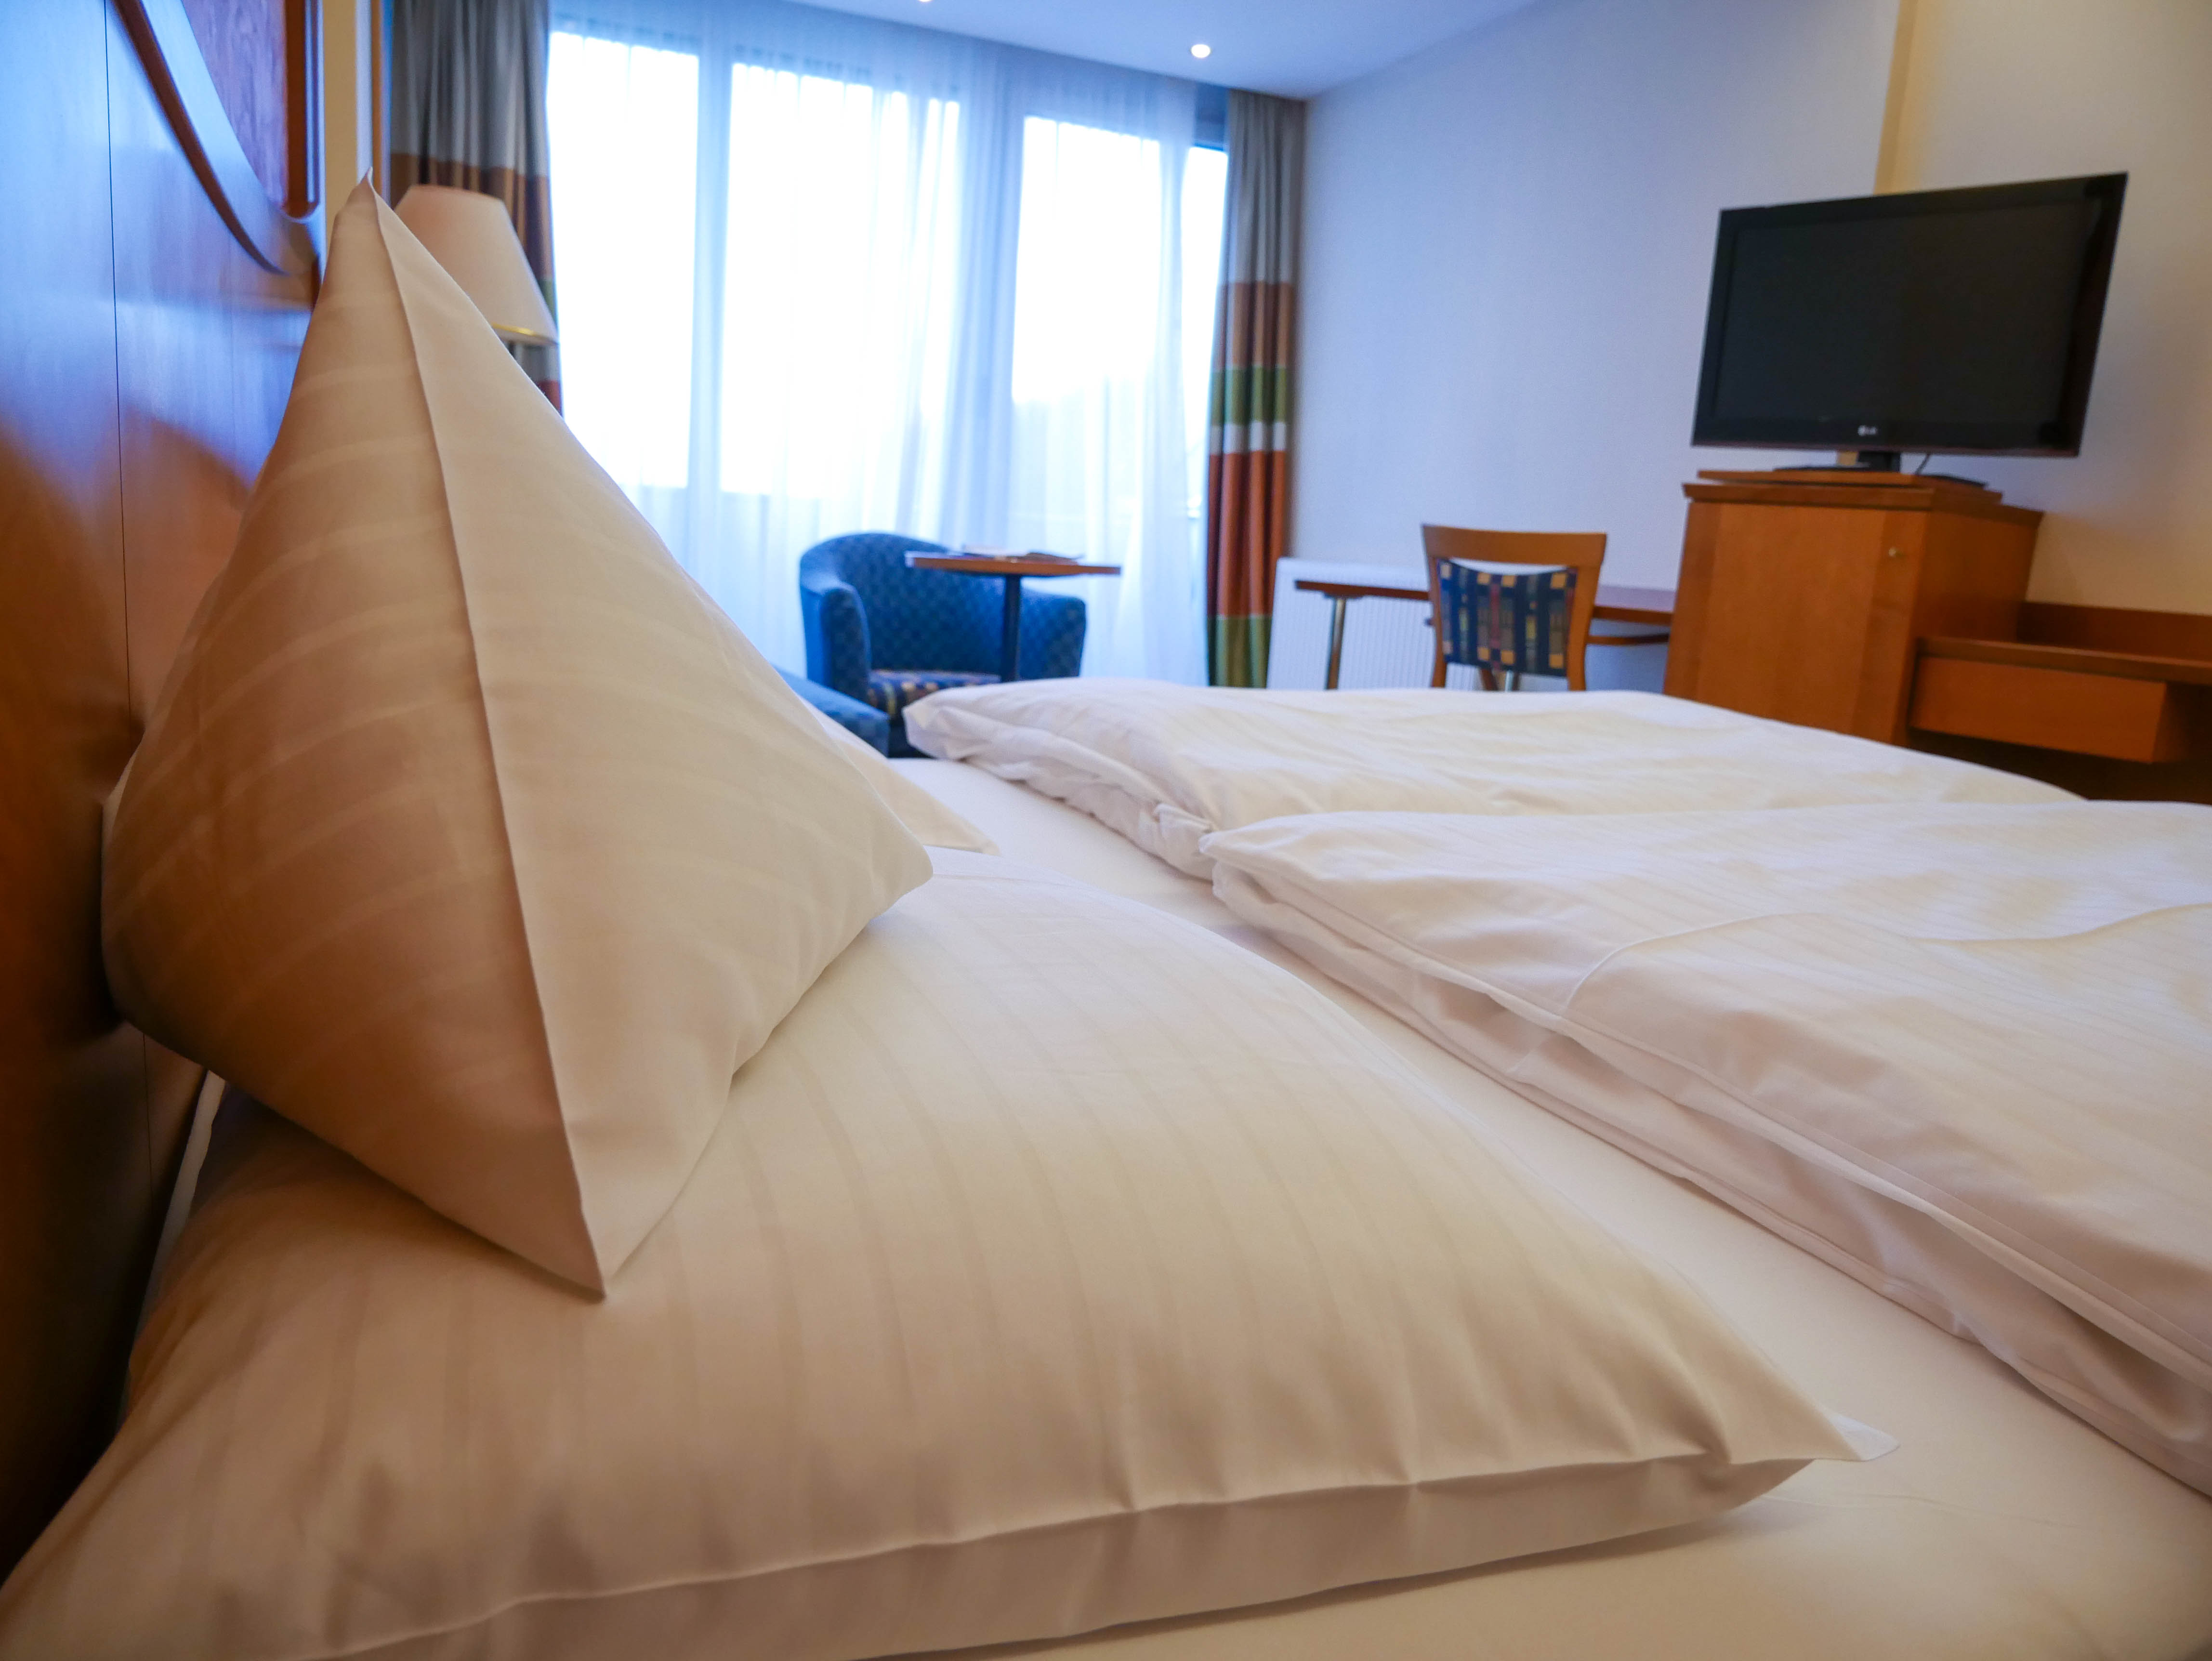 Wochenende in Loipersdorf Hotel Stoiser Therme